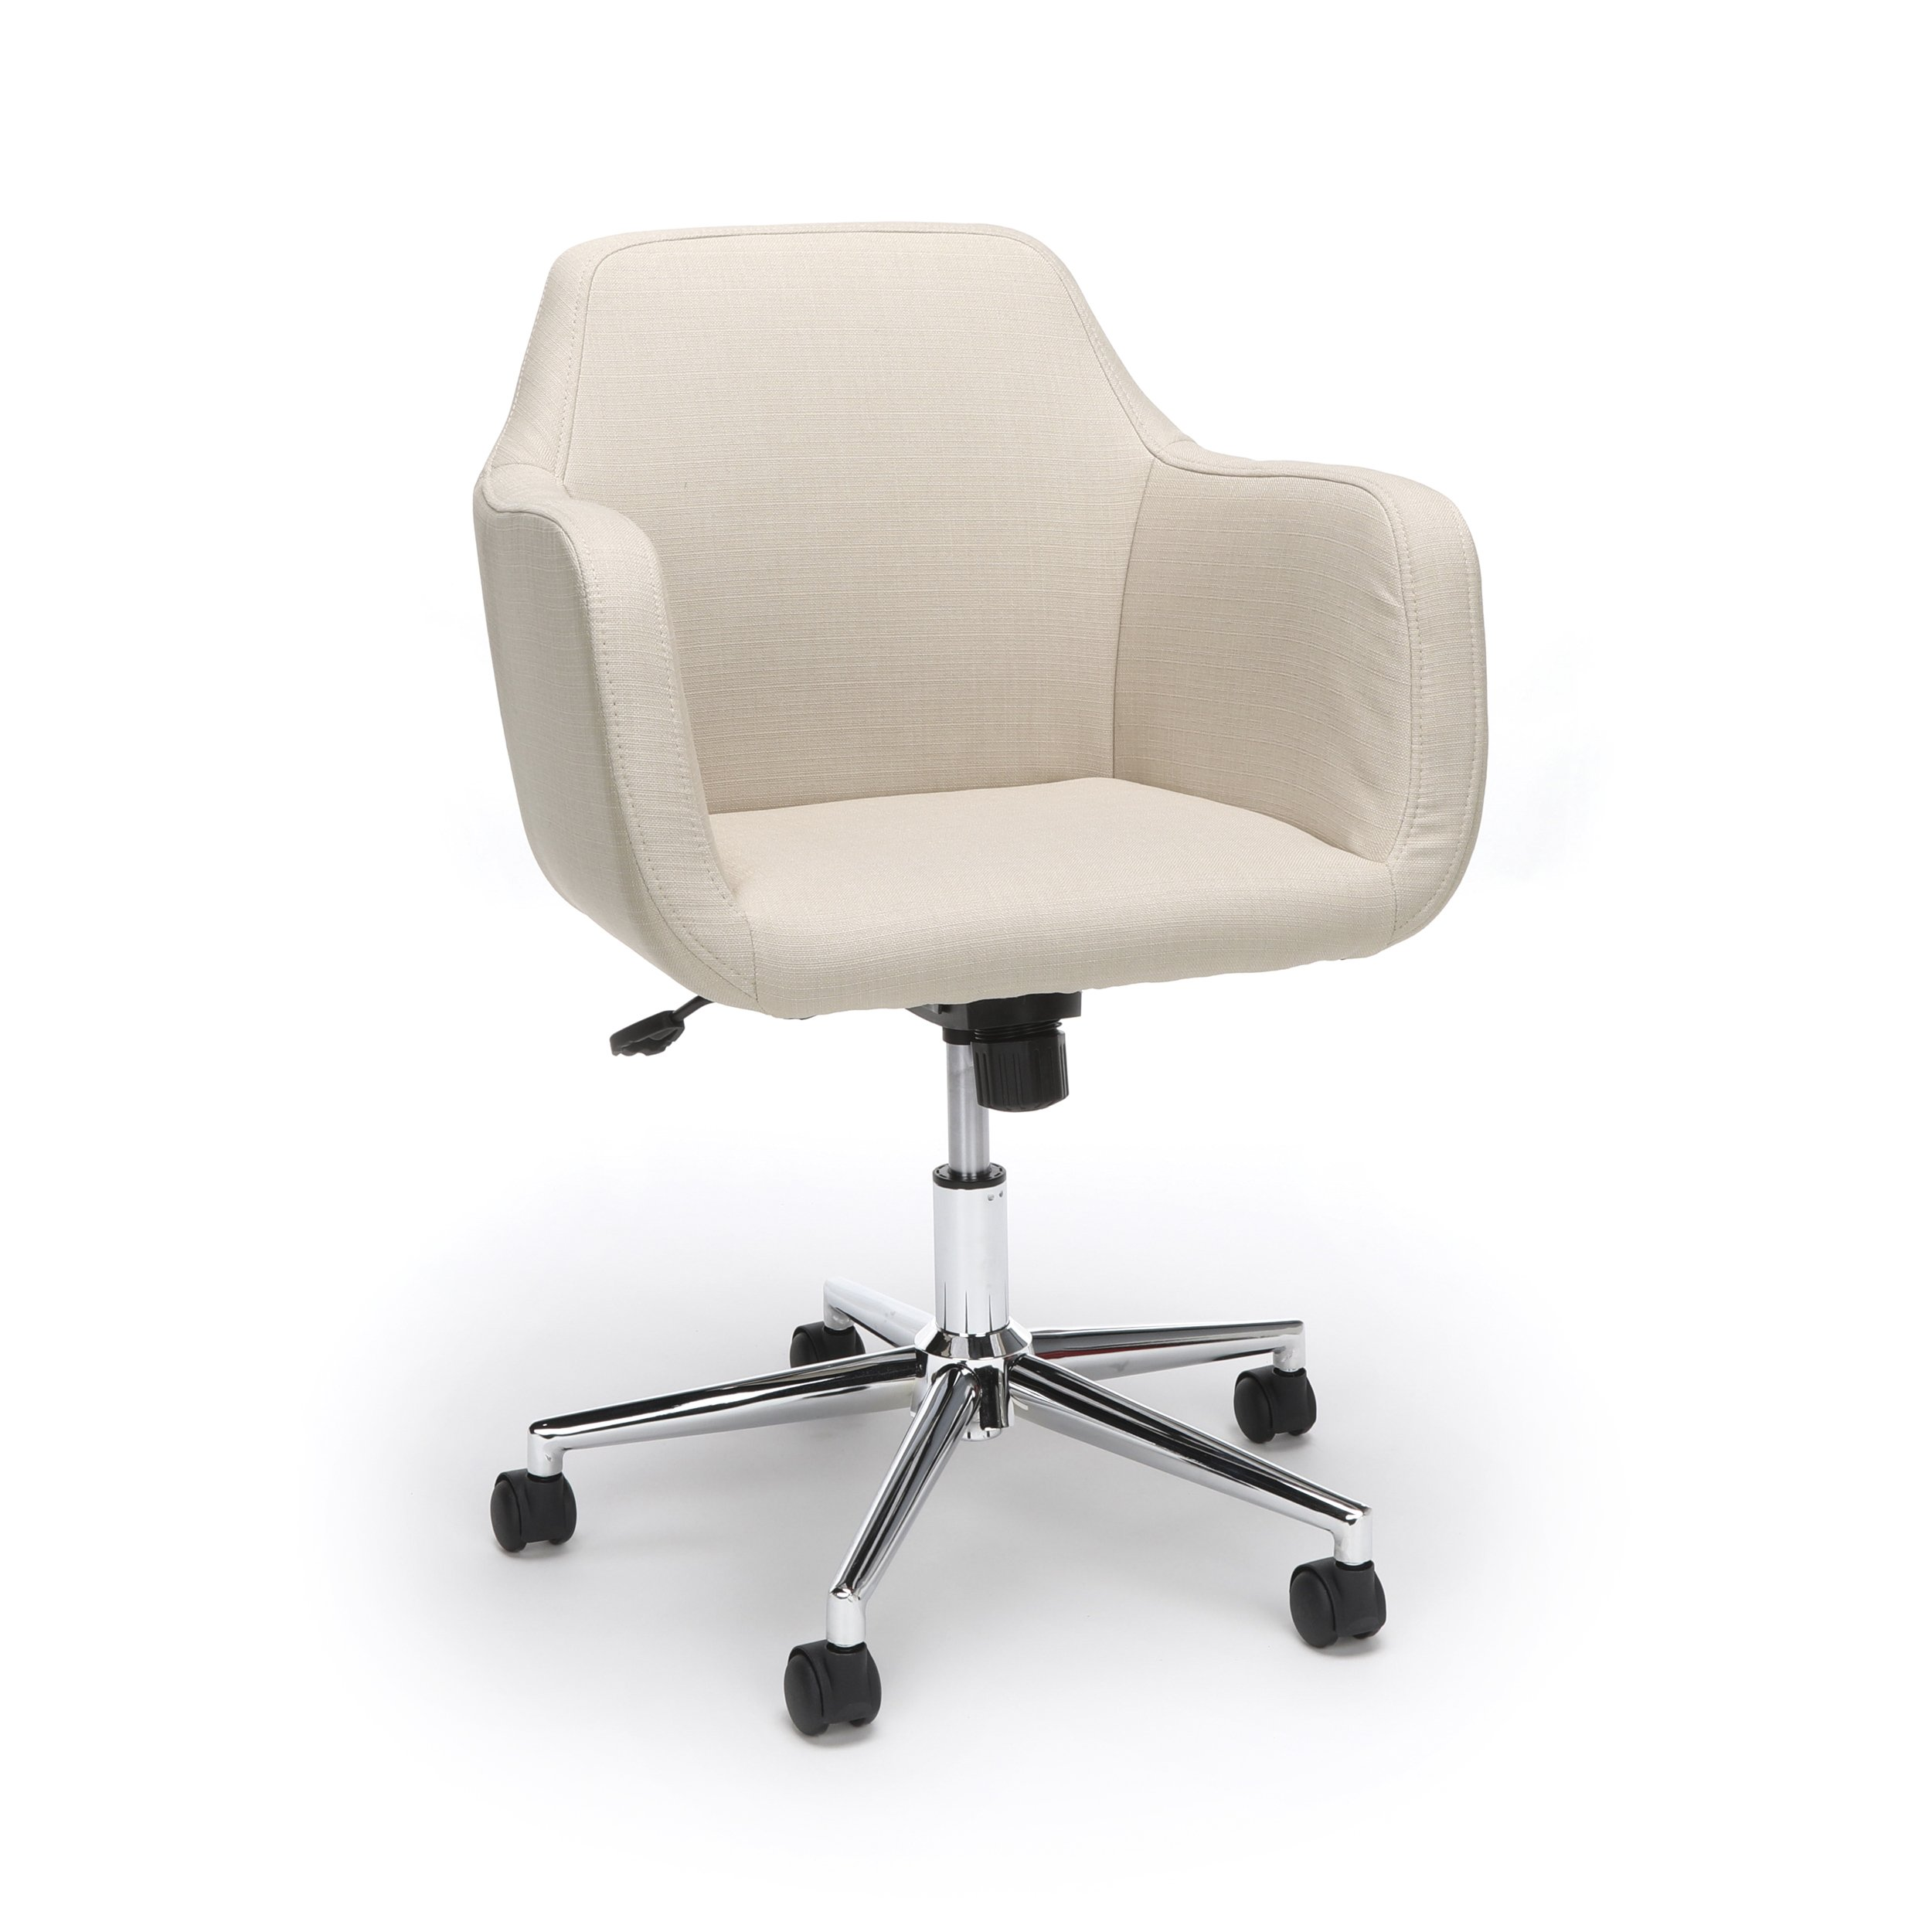 Essentials Upholstered Home Office Chair - Ergonomic Desk Chair with Arms for Conference Room or Office, Tan (ESS-2085-TAN)